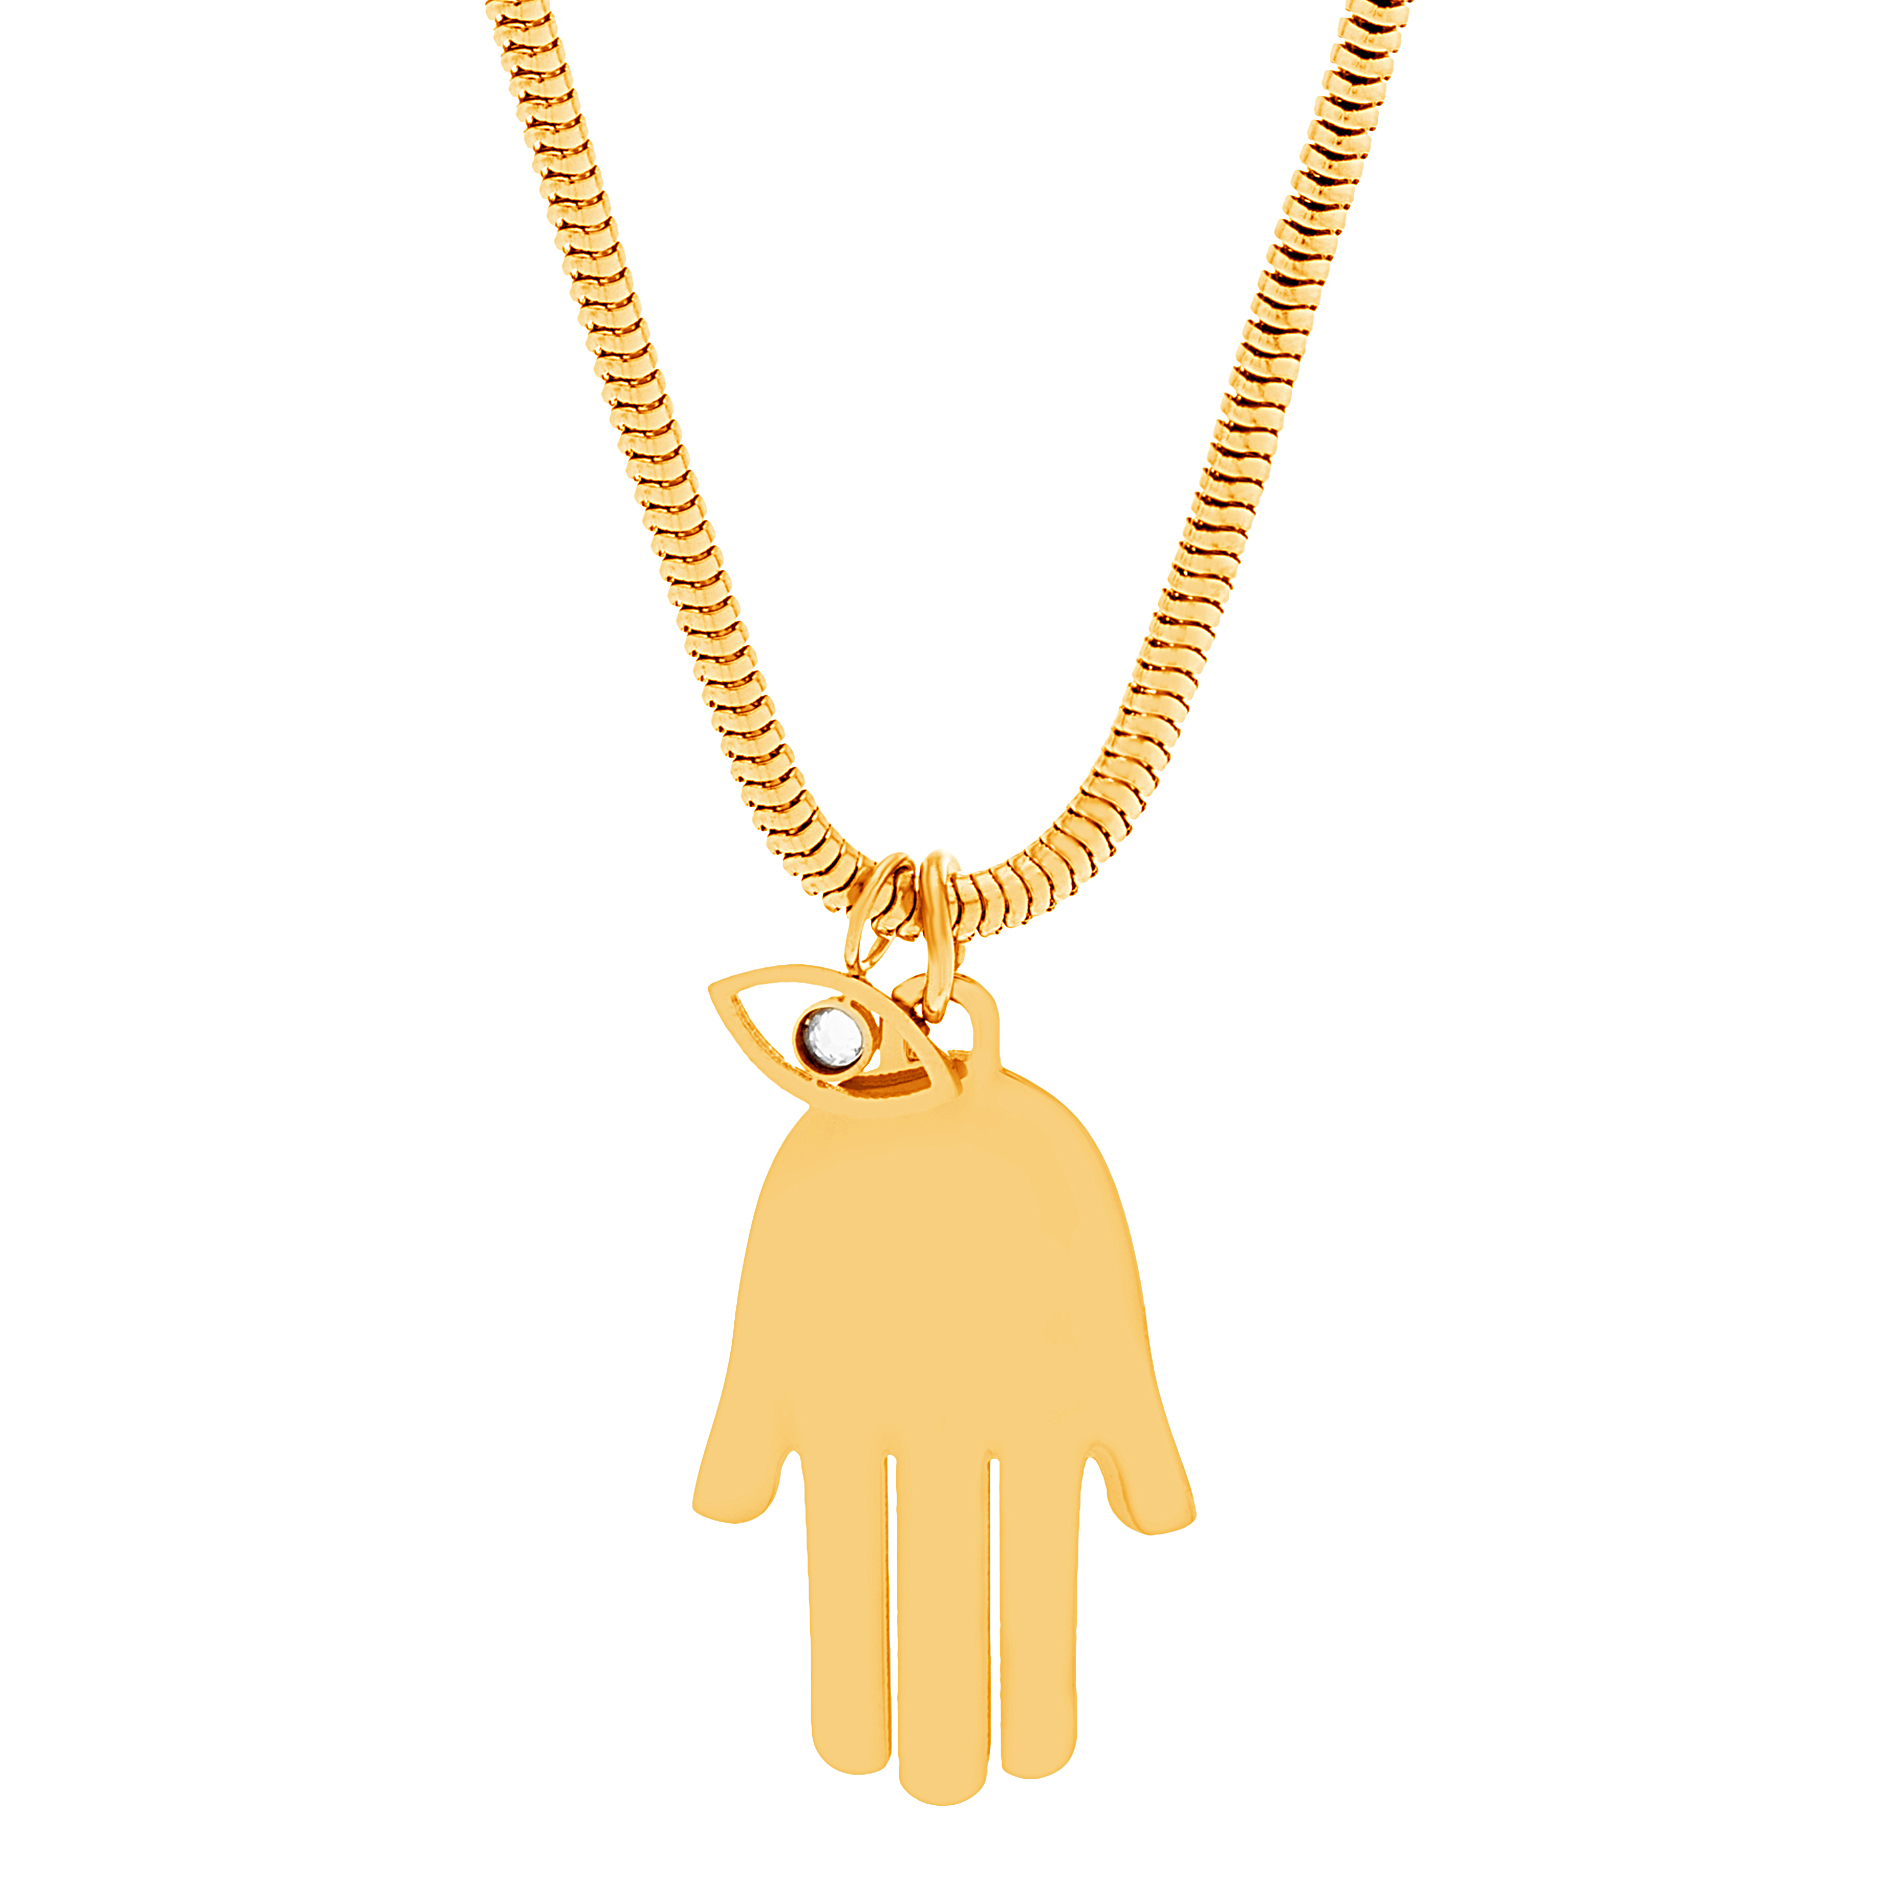 Gold-Tone Stainless Steel Hamsa Necklace